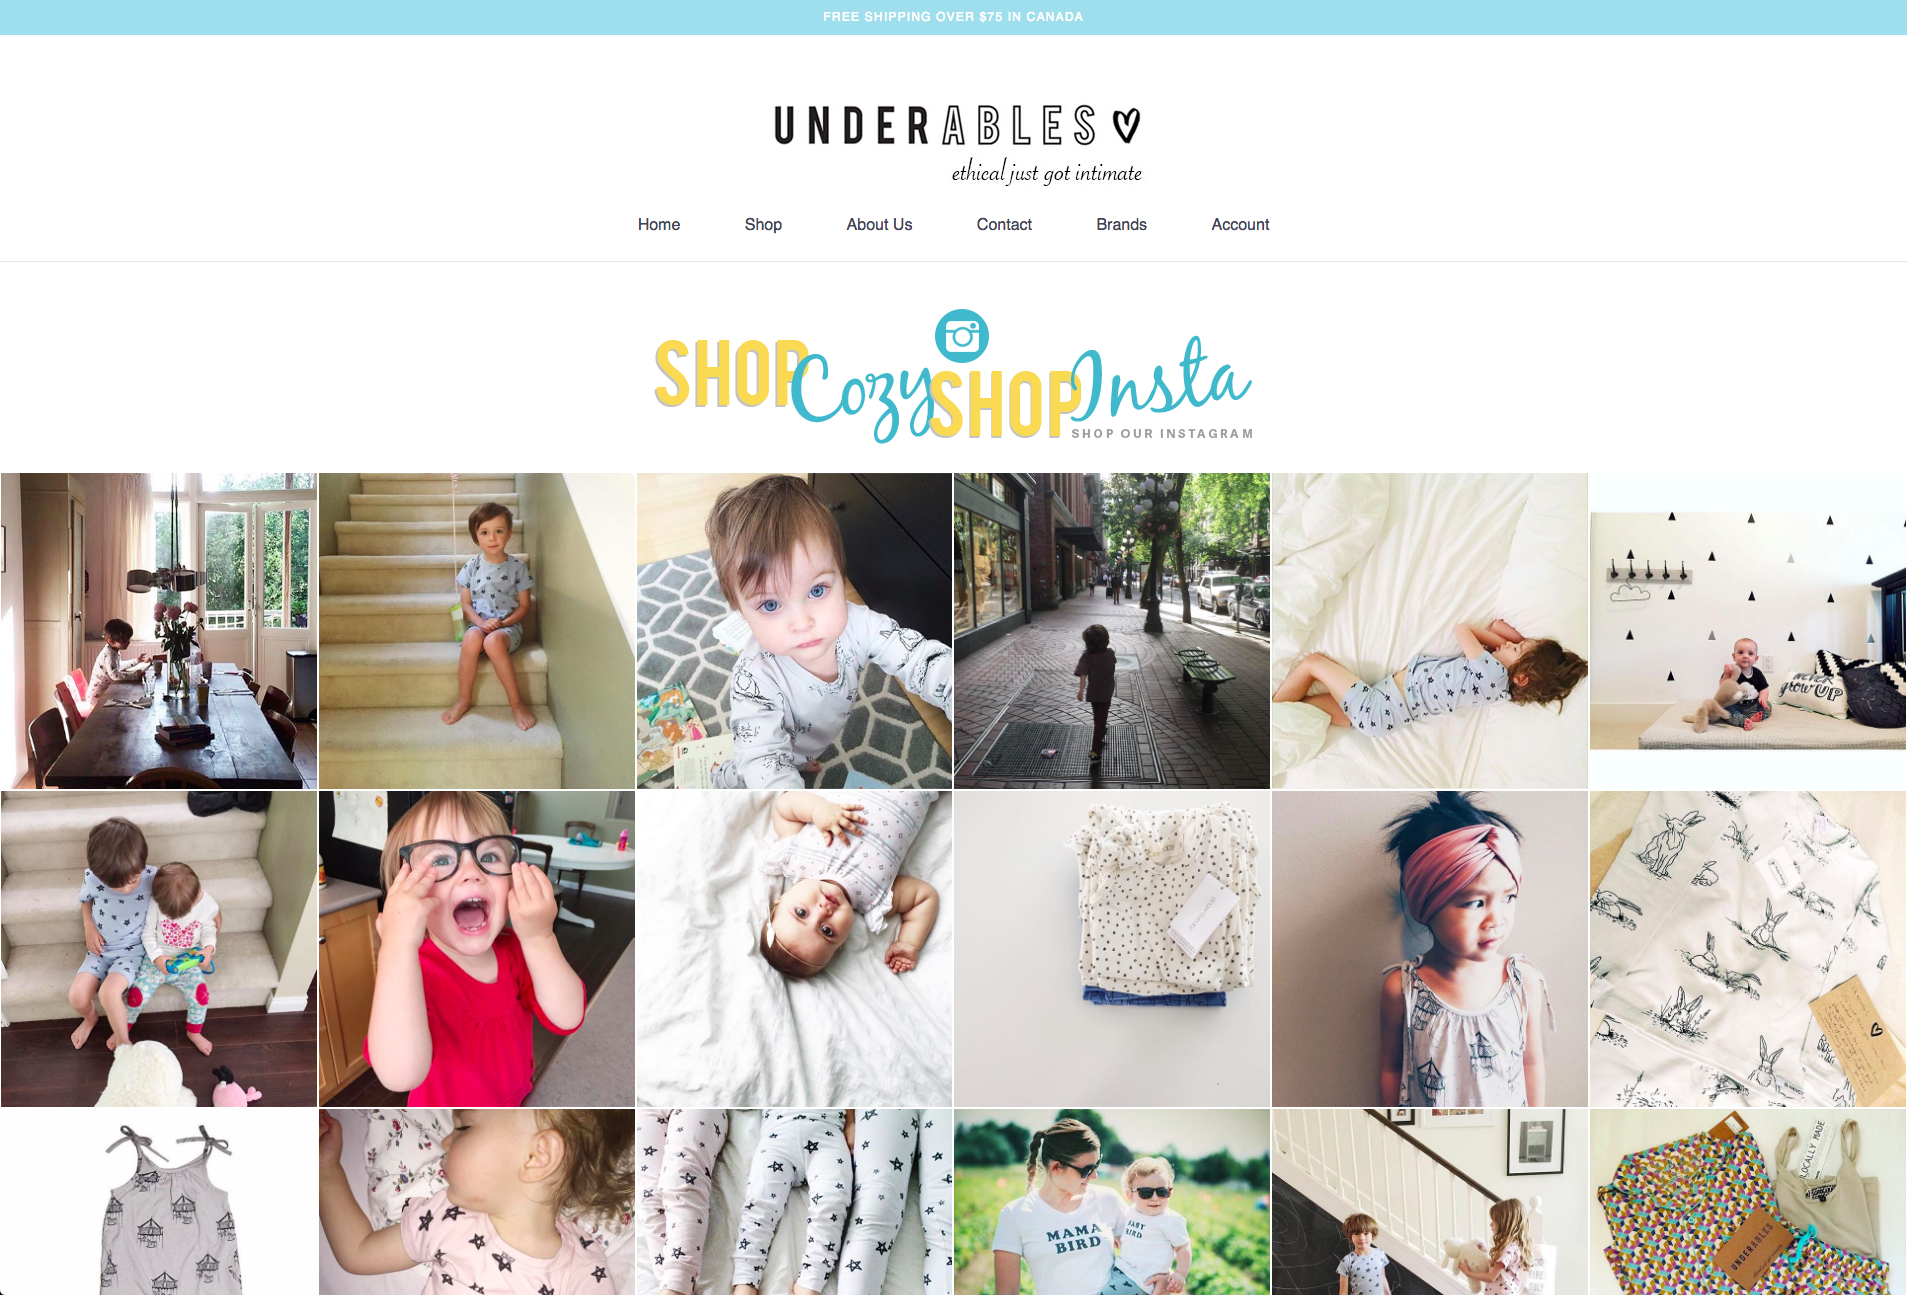 underables shoppable instagram